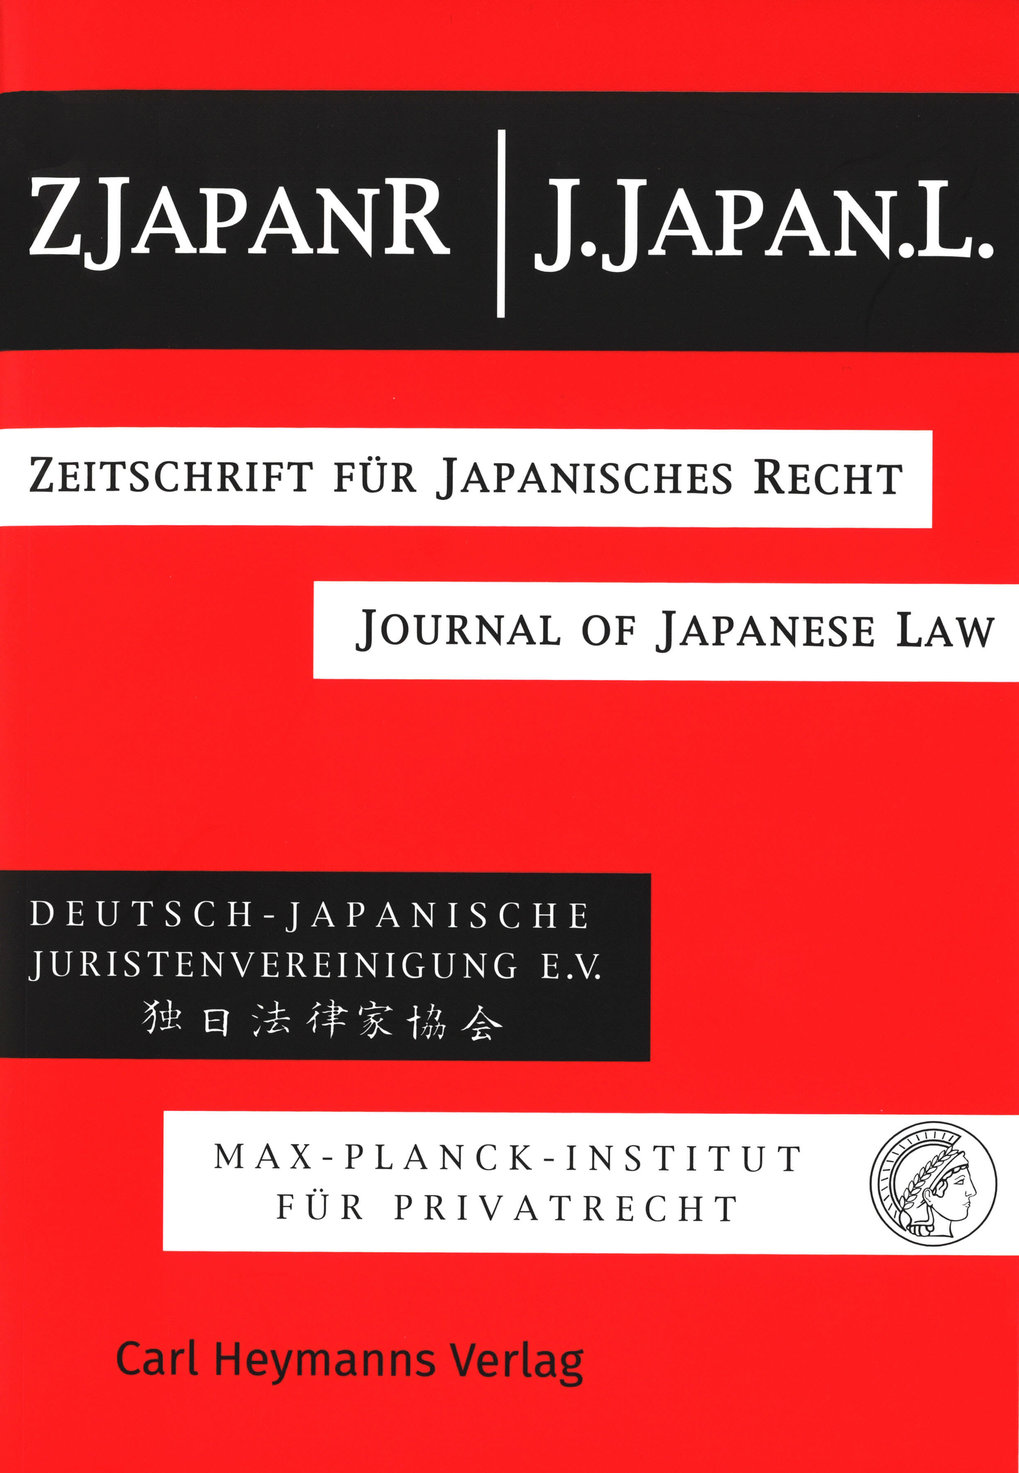 Journal of Japanese Law